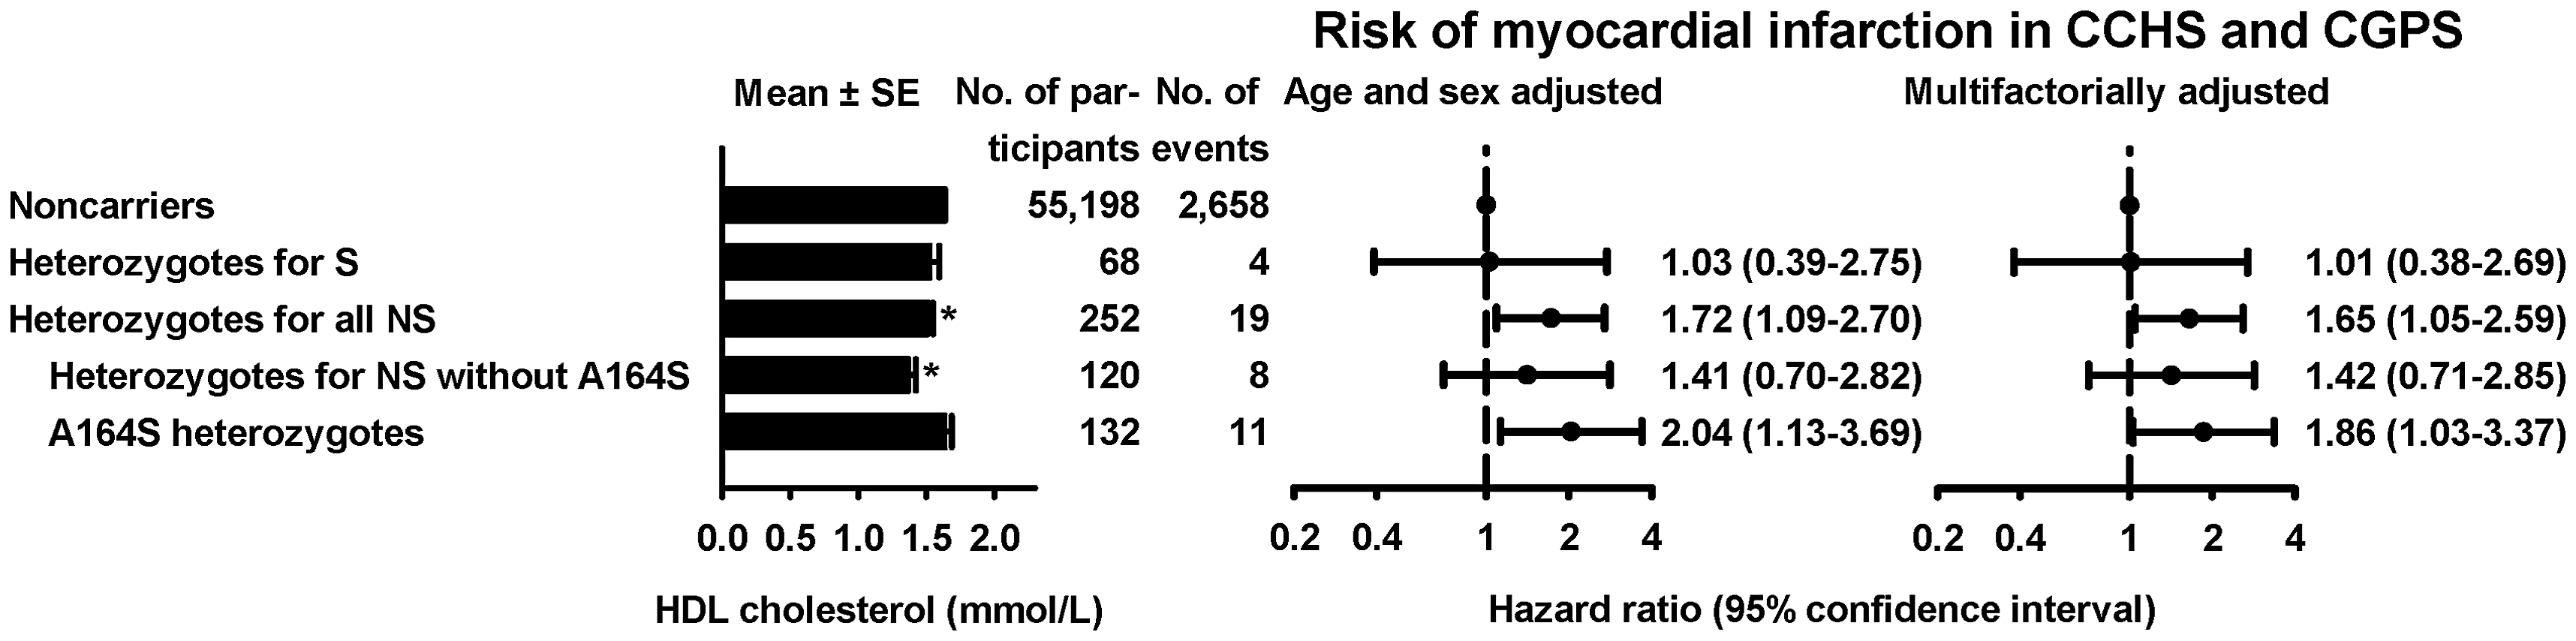 HDL cholesterol levels and risk of myocardial infarction for heterozygotes for synonymous (S) or nonsynonymous (NS) variants in <i>APOA1</i>.